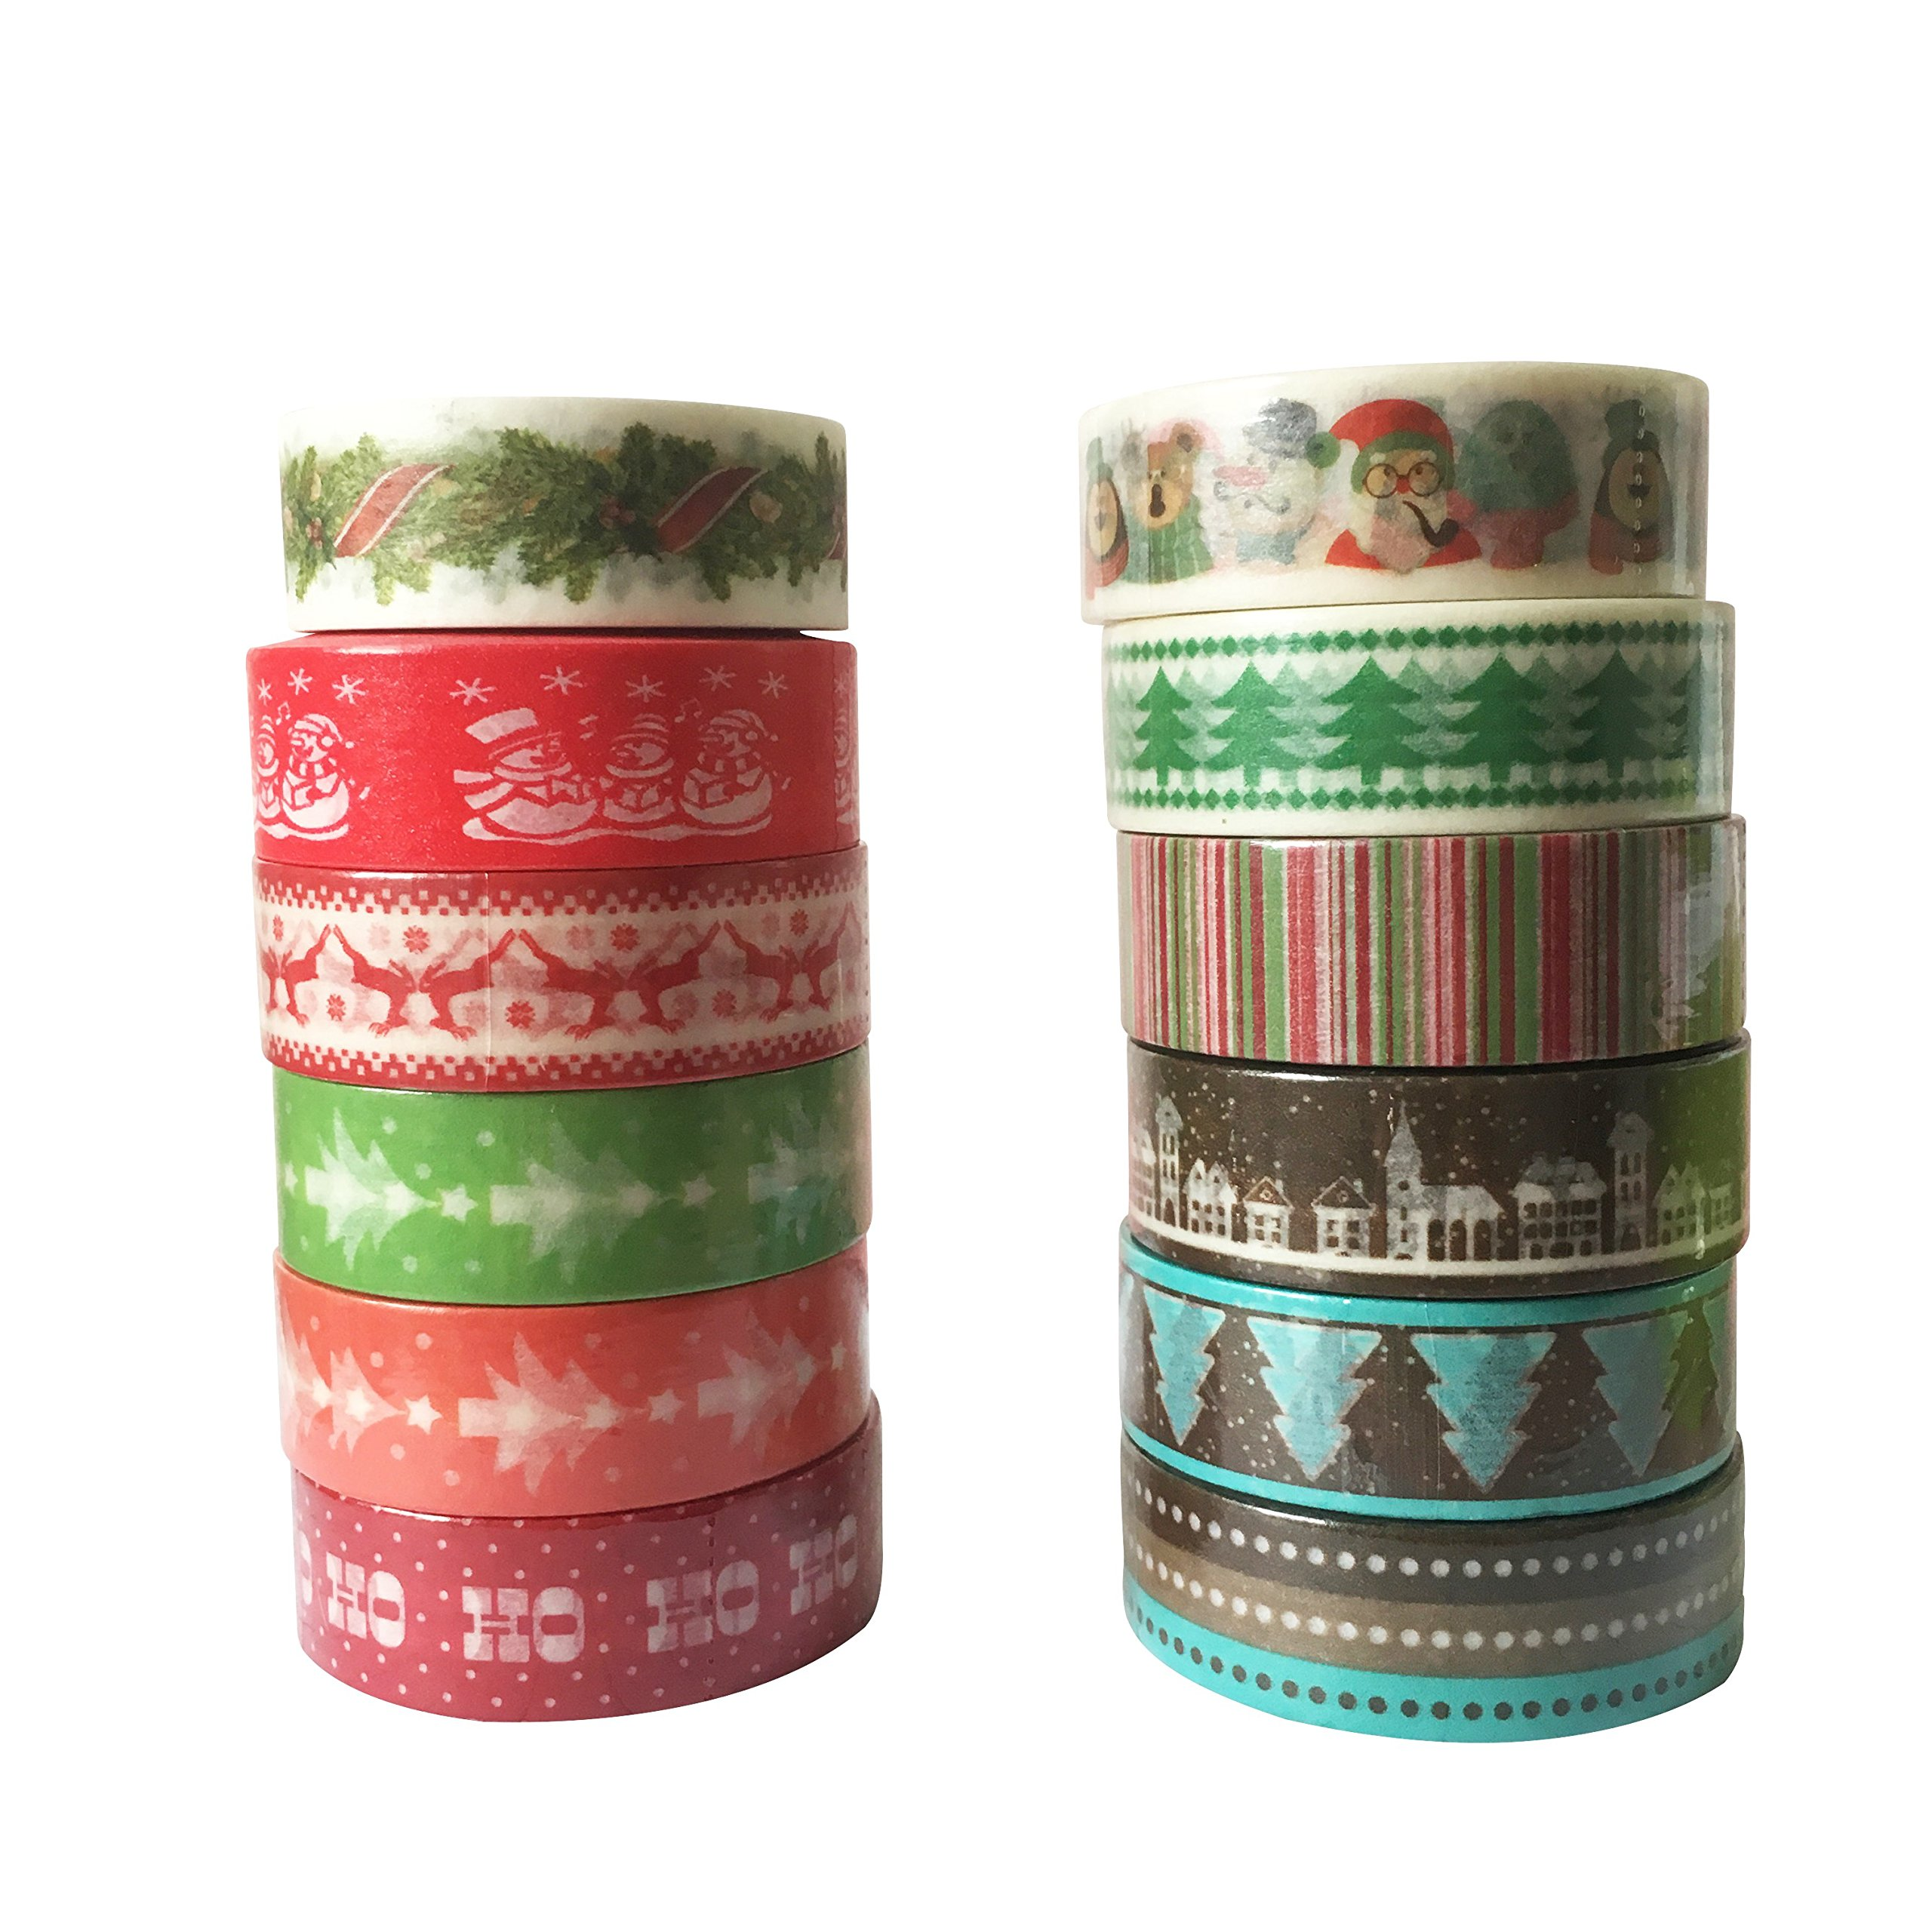 12 Rolls Washi Tape Merry Christmas Holiday Solid Set 10m / 32.8feet Long, 15mm Wide, Premium Chevron, Dear, Tree, Black, White, Dots, Lines Diy Washi Masking Tape, Scrapbooking Craft & Hobby Supplies